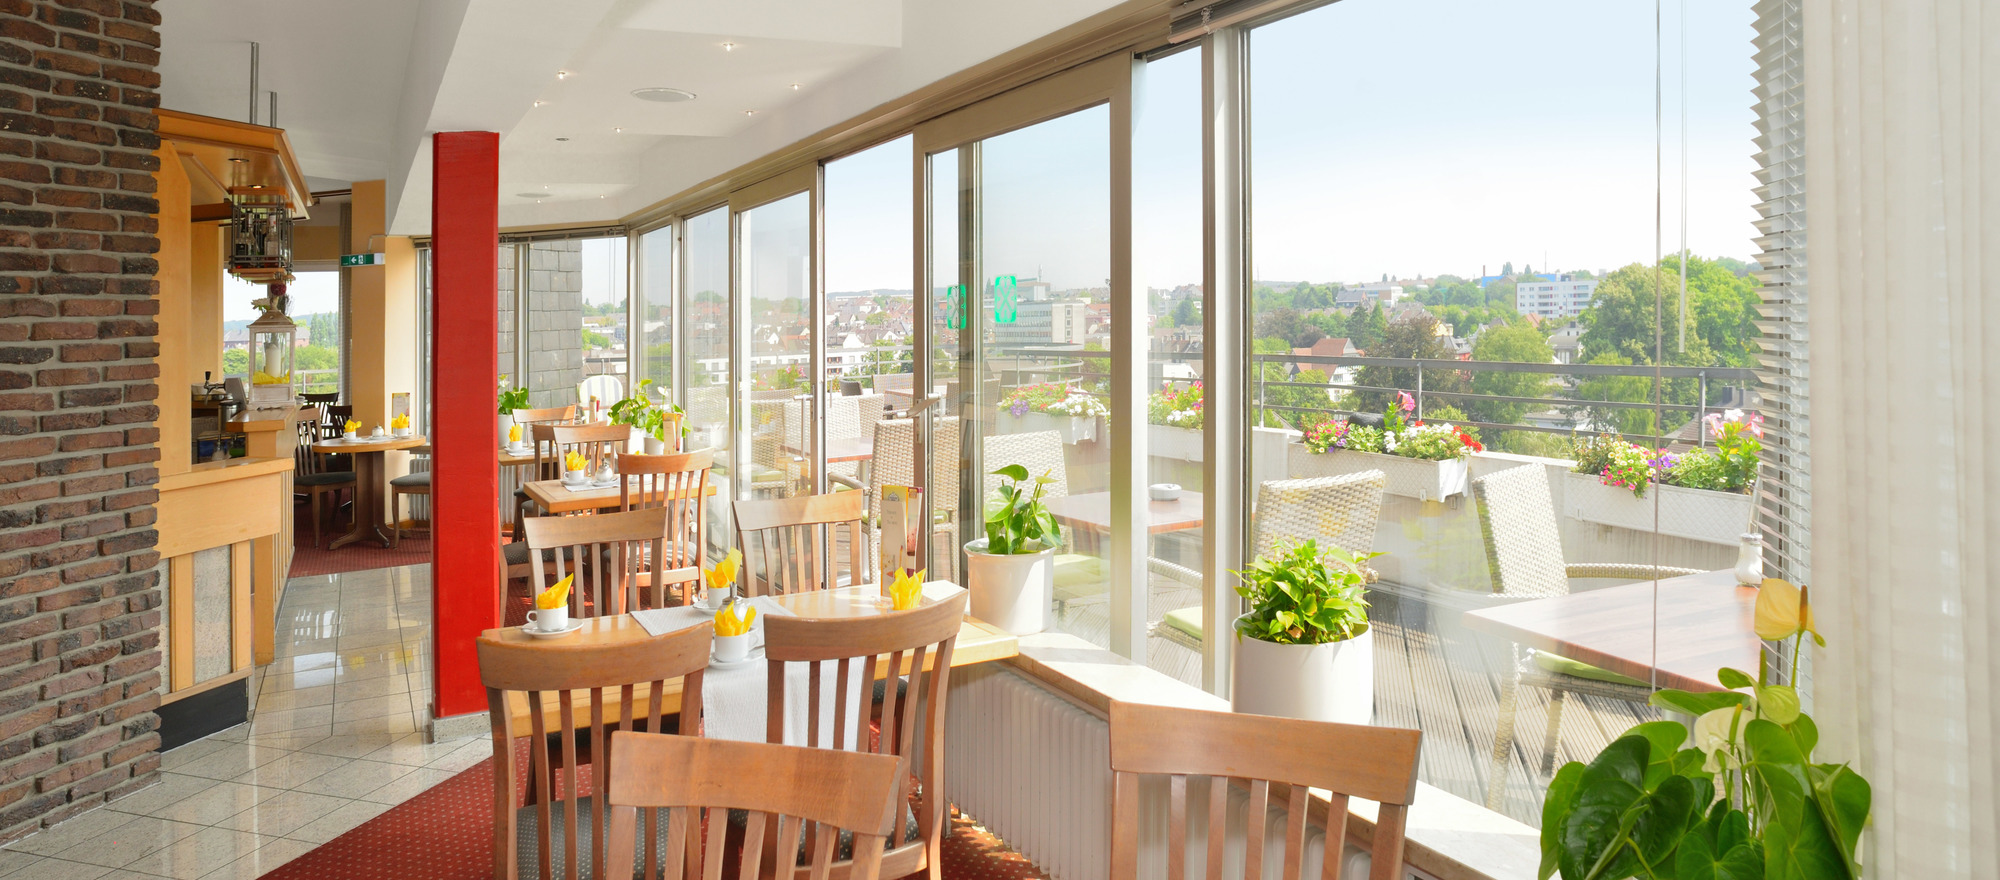 Wonderful panoramic views out of the 9th floor Café at the 3-star-superior hotel Ringhotel Parkhotel Witten in Witten